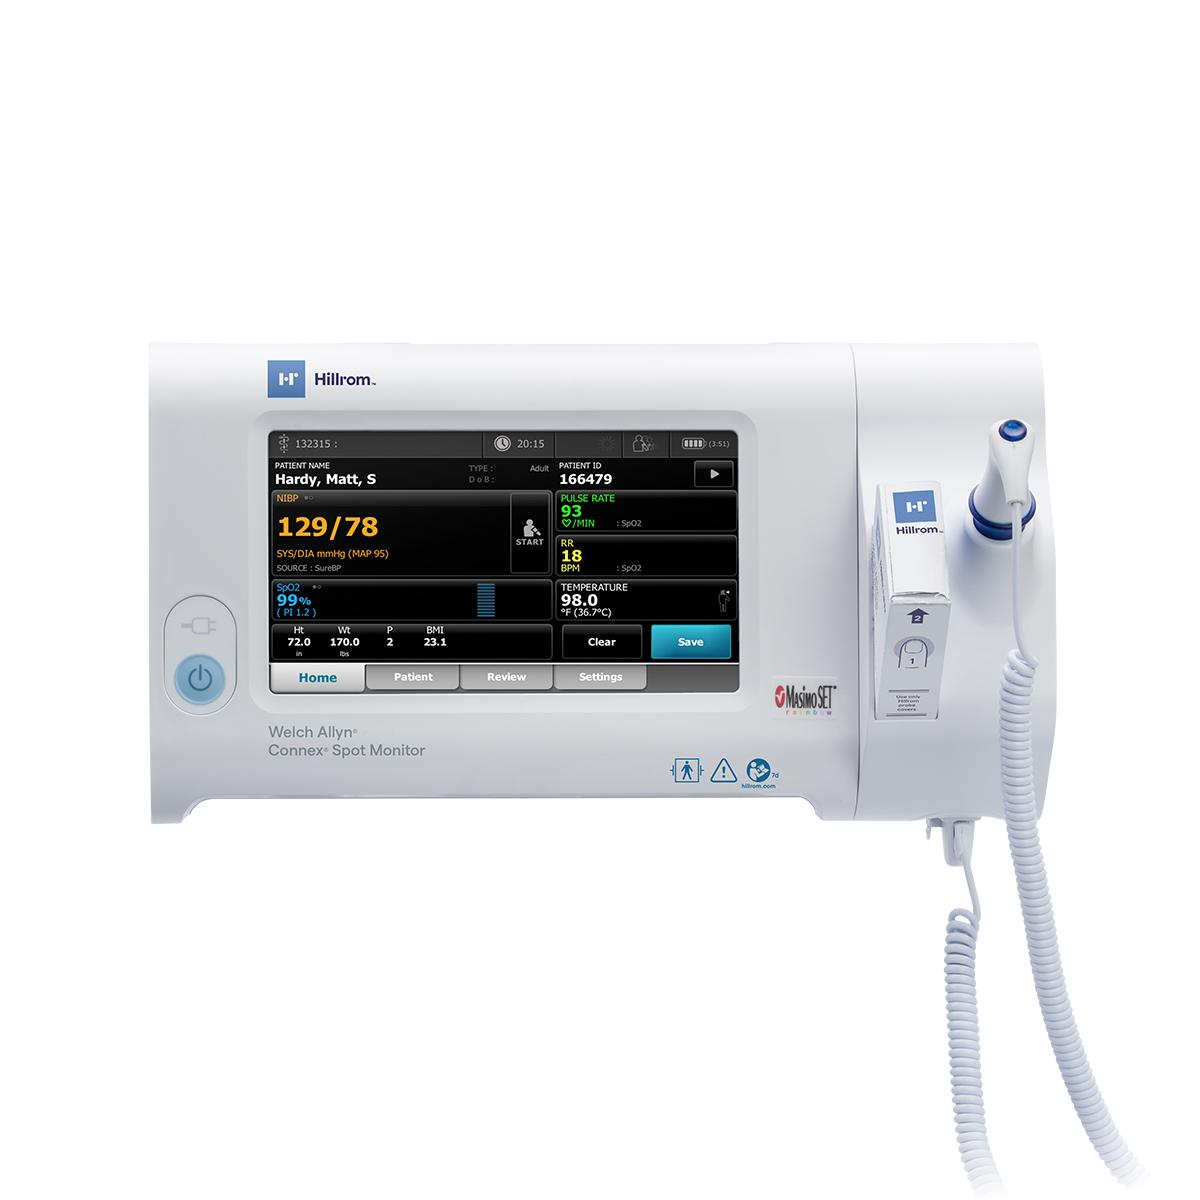 Connex Spot Monitor straight on view with Braun PRO 6000 Ear Thermometer